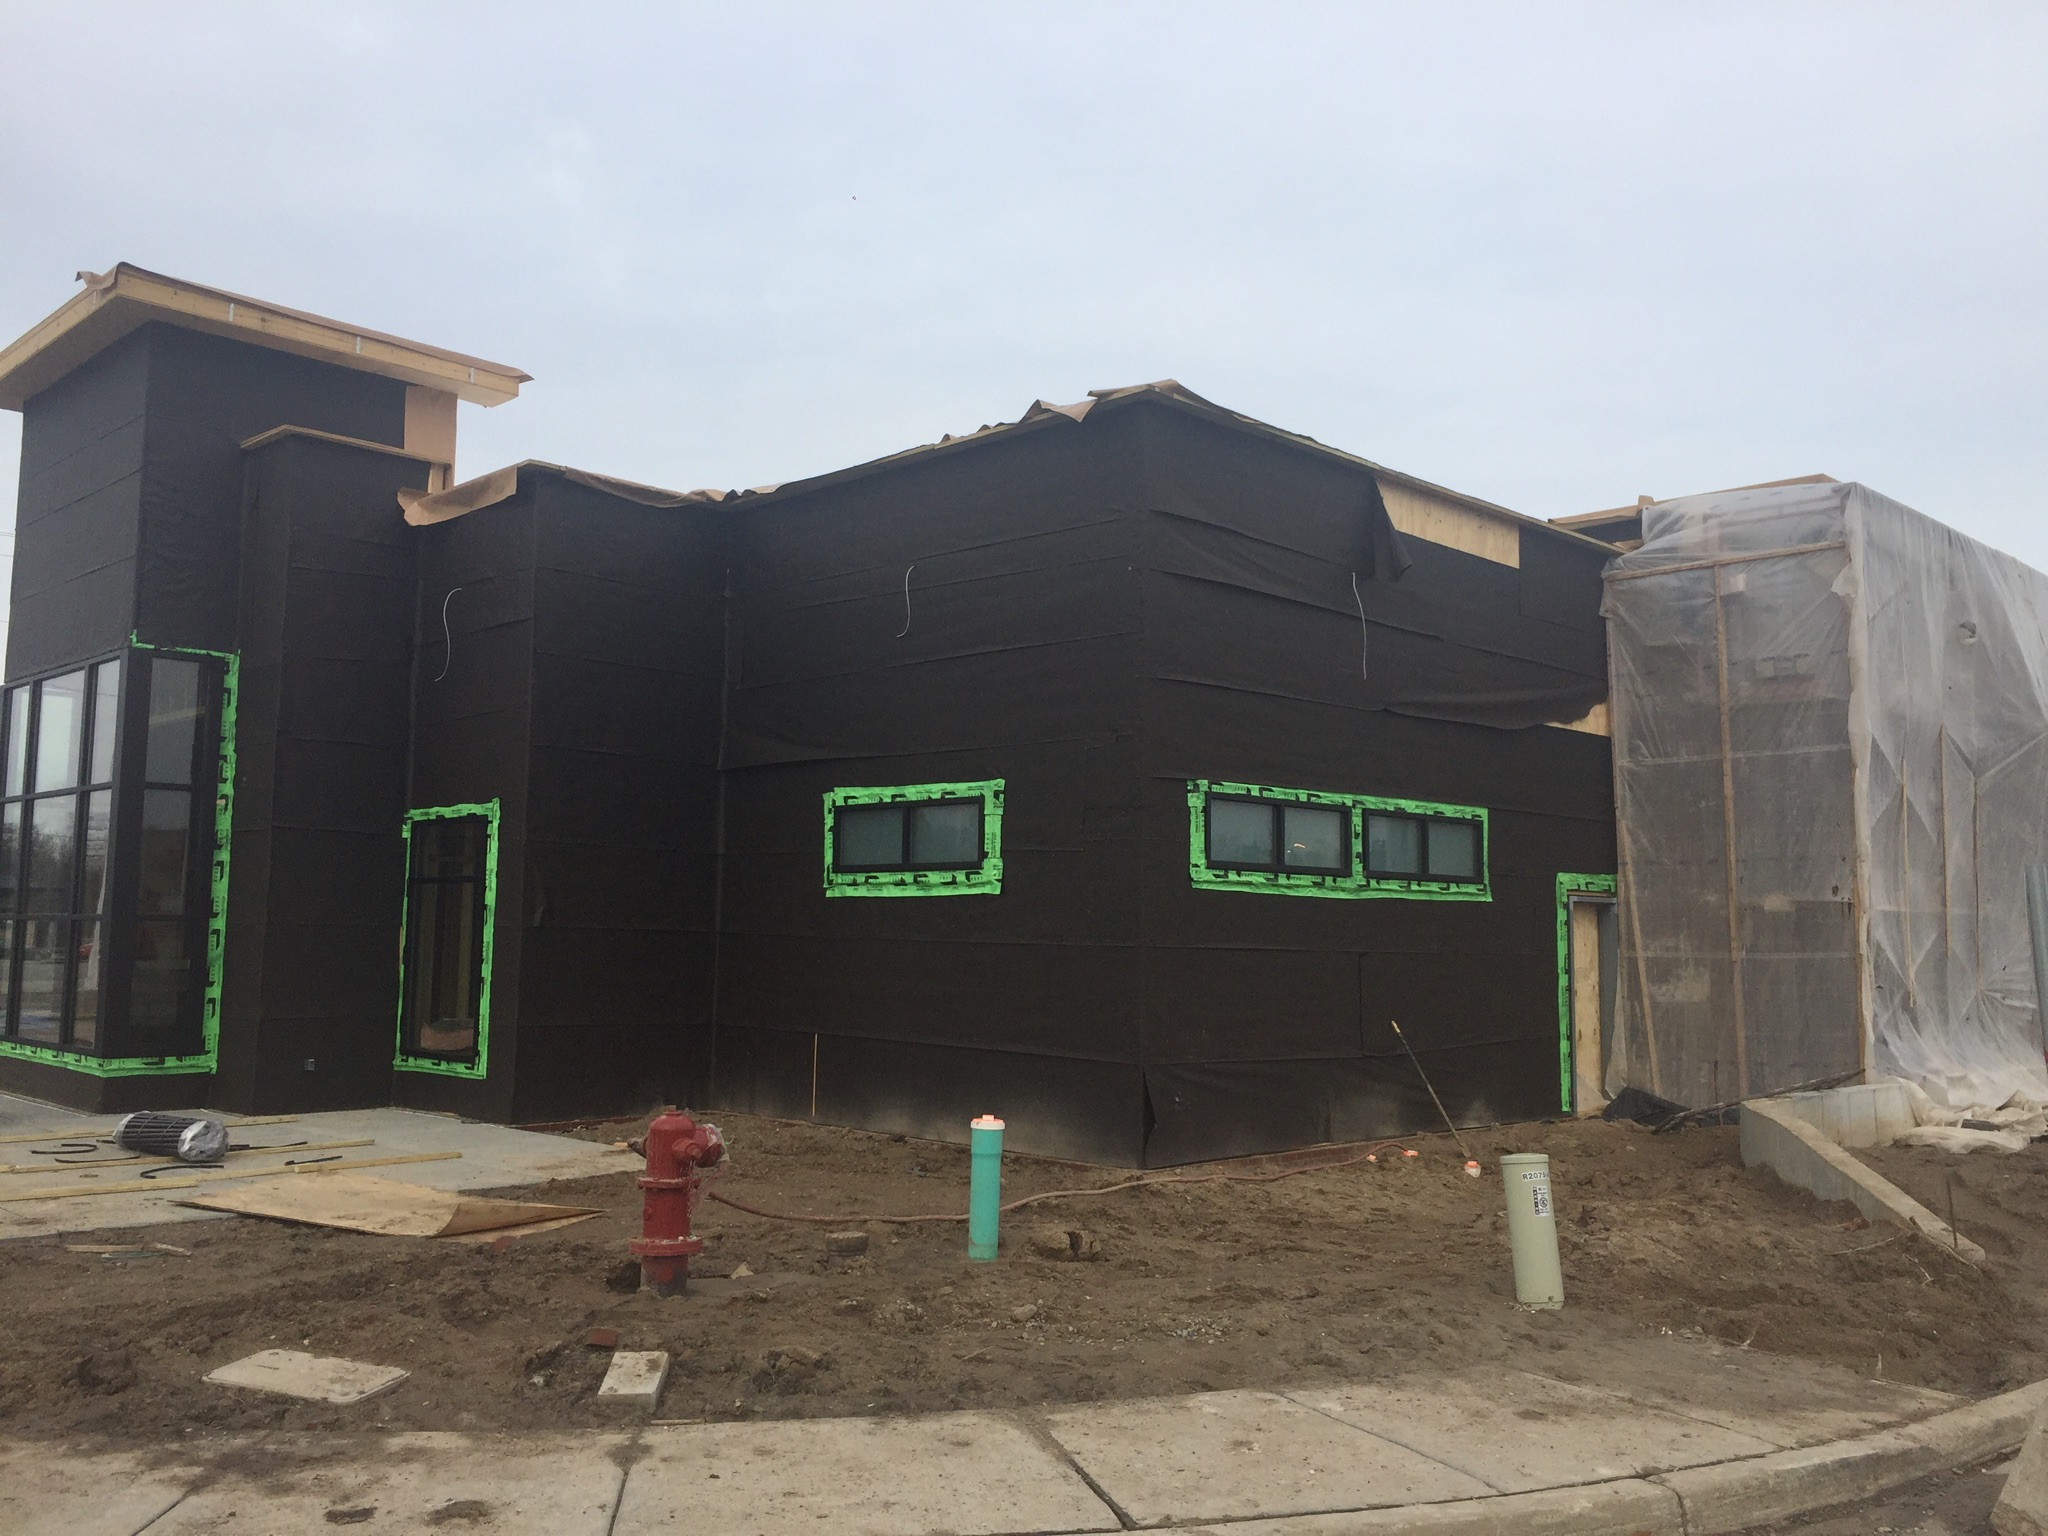 Construction Continues on New Chick-Fil-A in Meridian Township